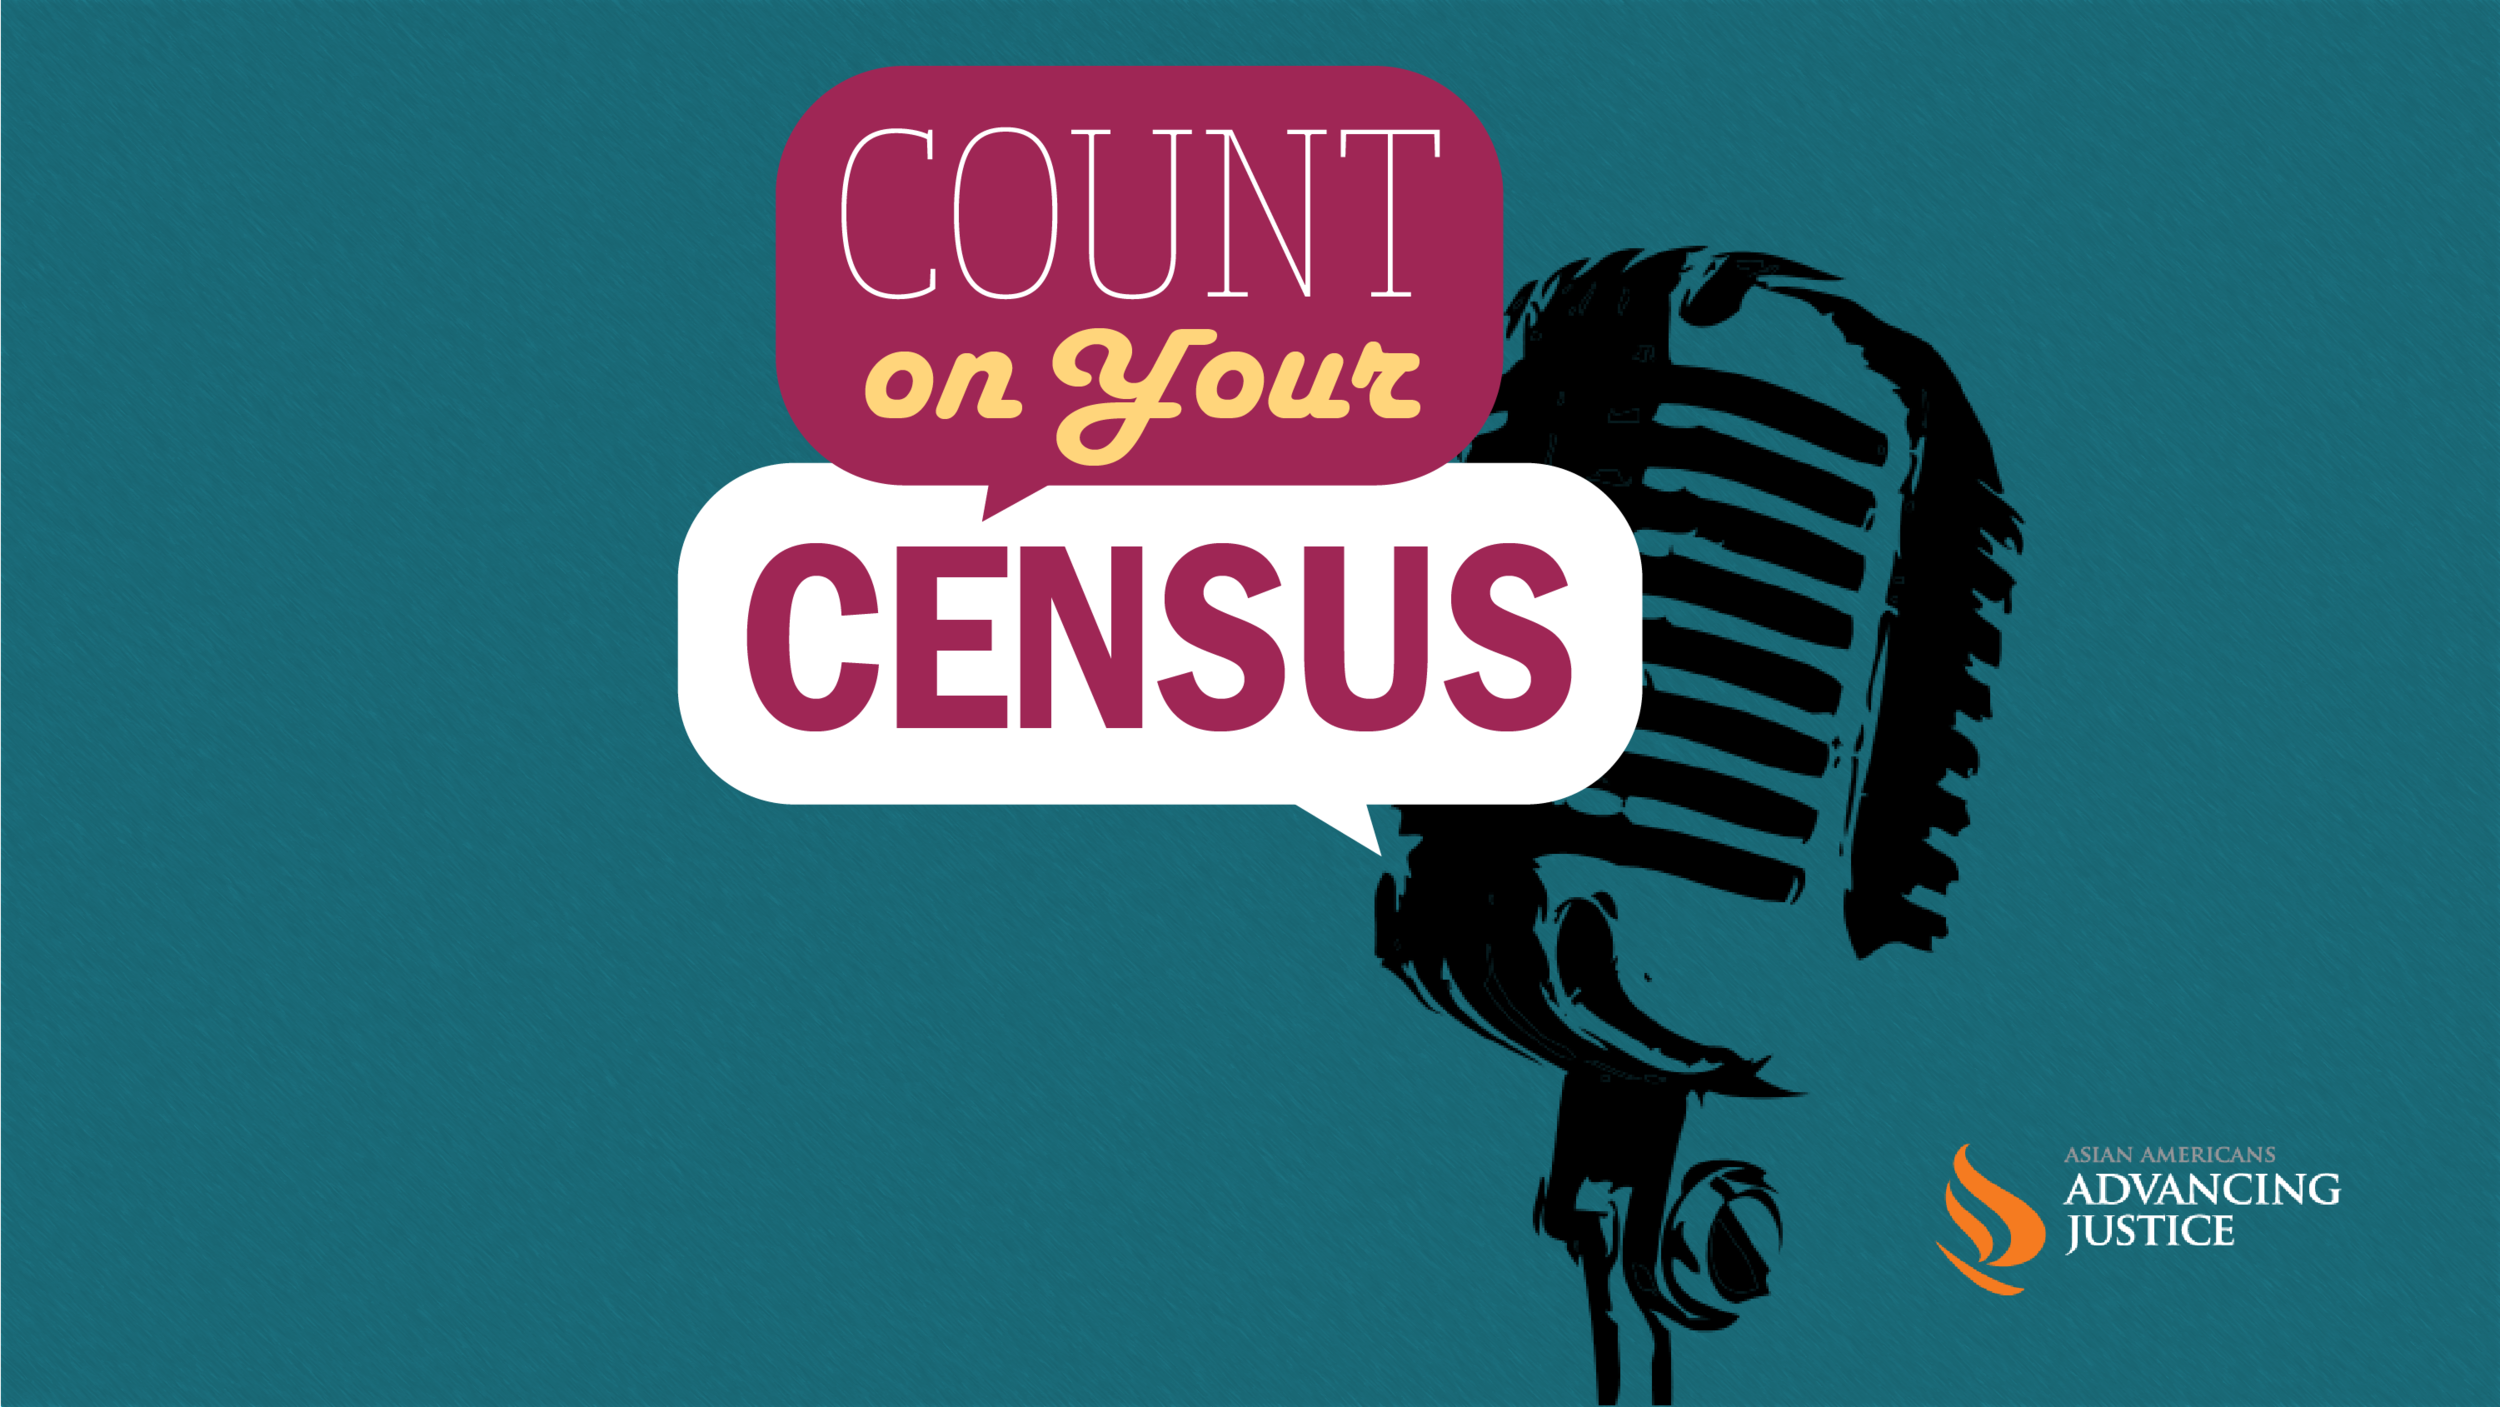 New podcast! - We created a new podcast, Count On Your Census, to help promote a robust and accurate count in the 2020 Census. Listen and subscribe here or on your favorite podcast streaming service!